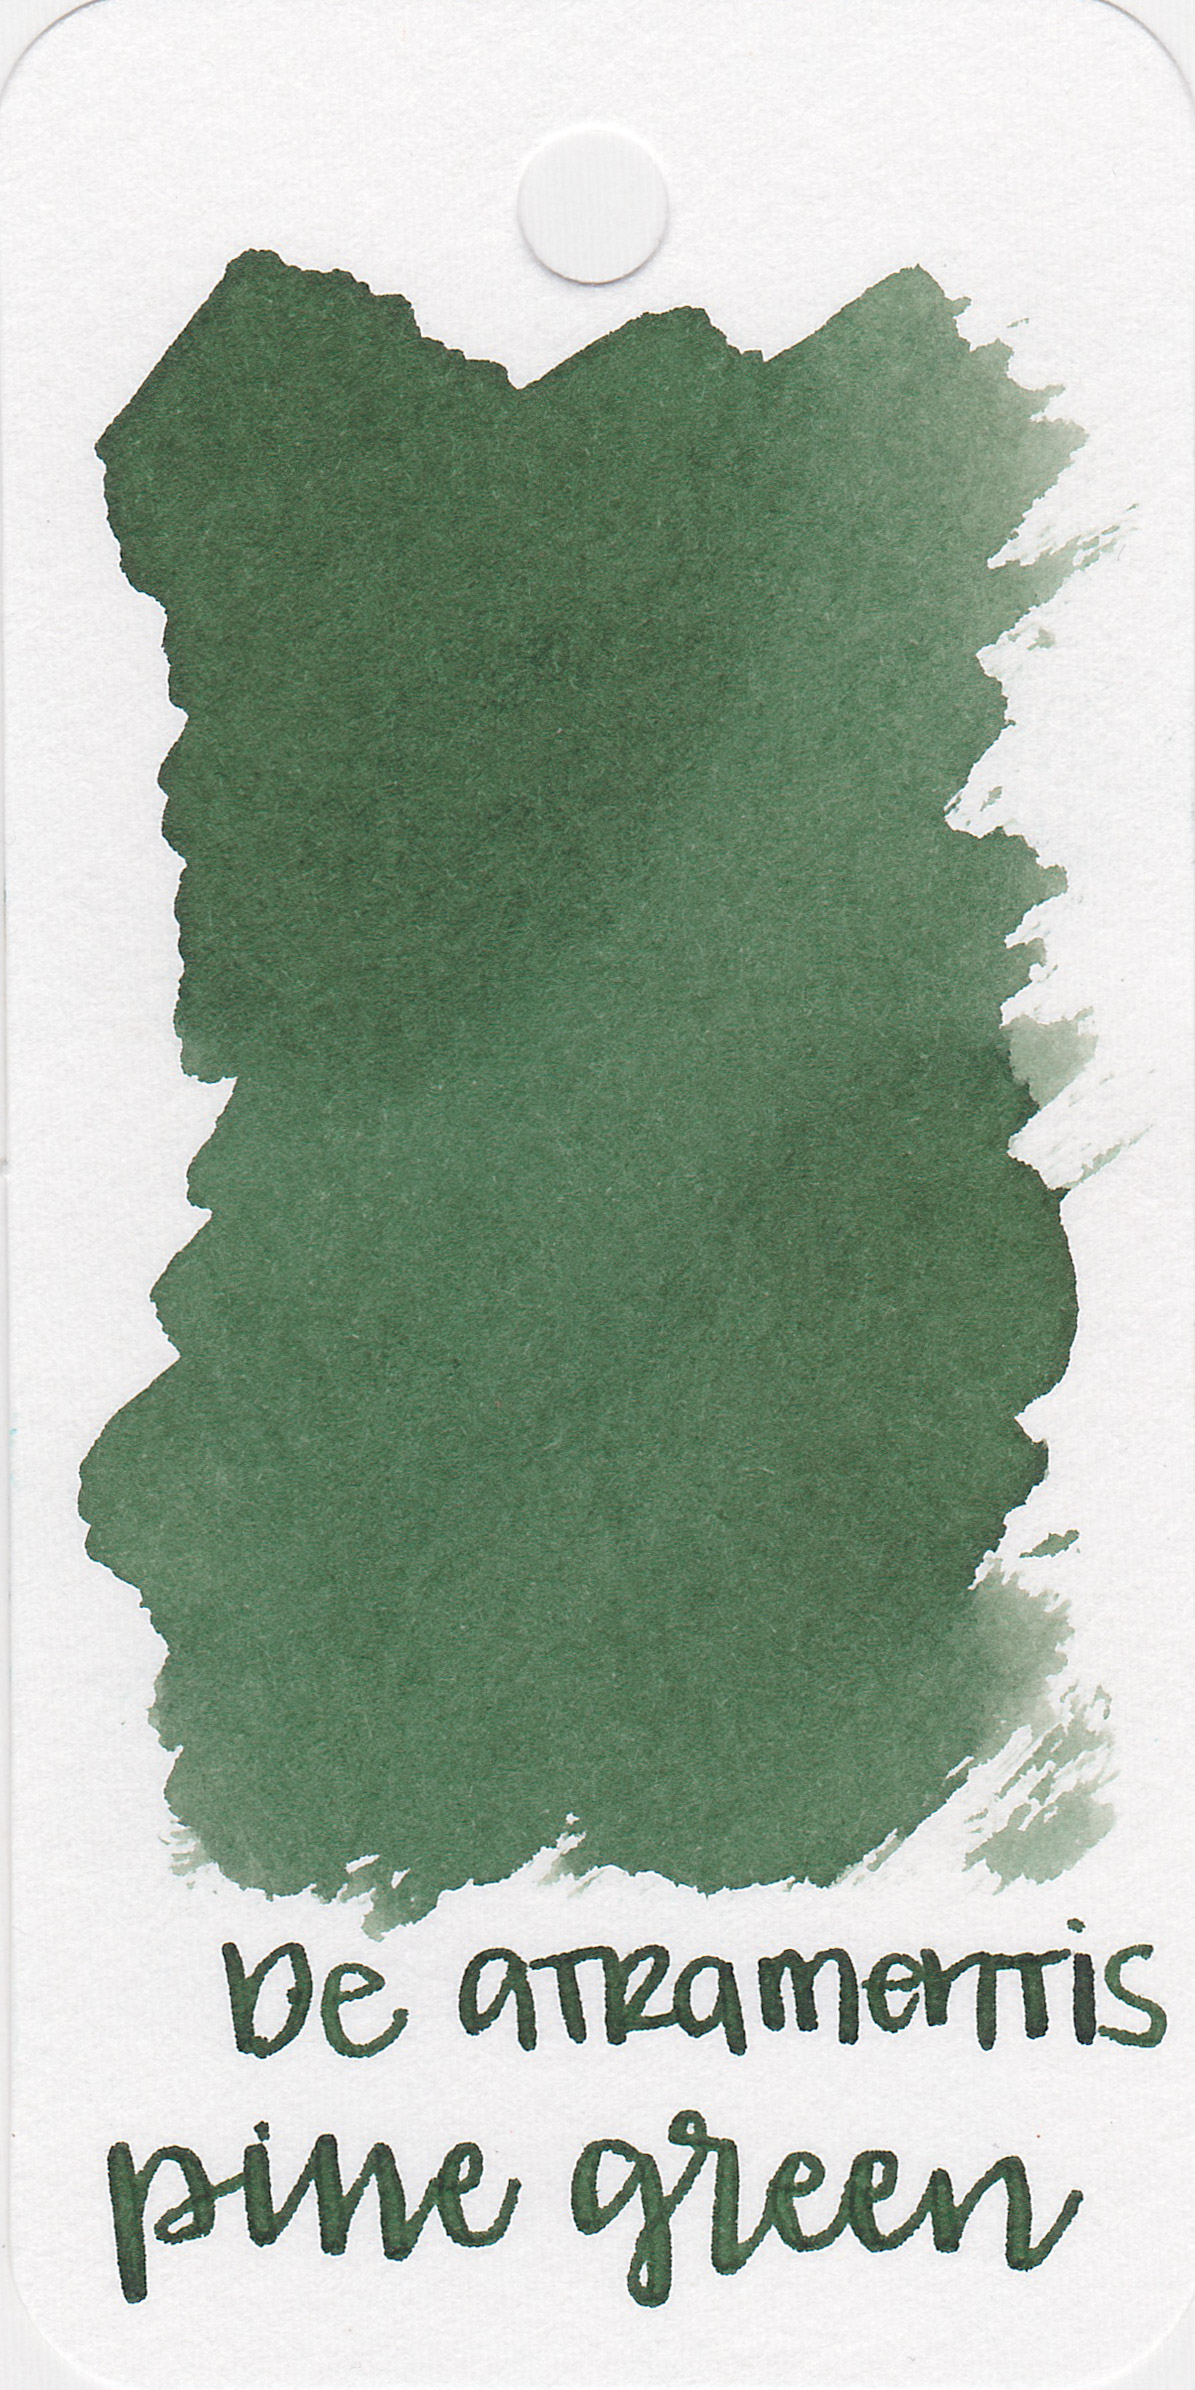 The color: - Pine Green is just that, a dark pine green.